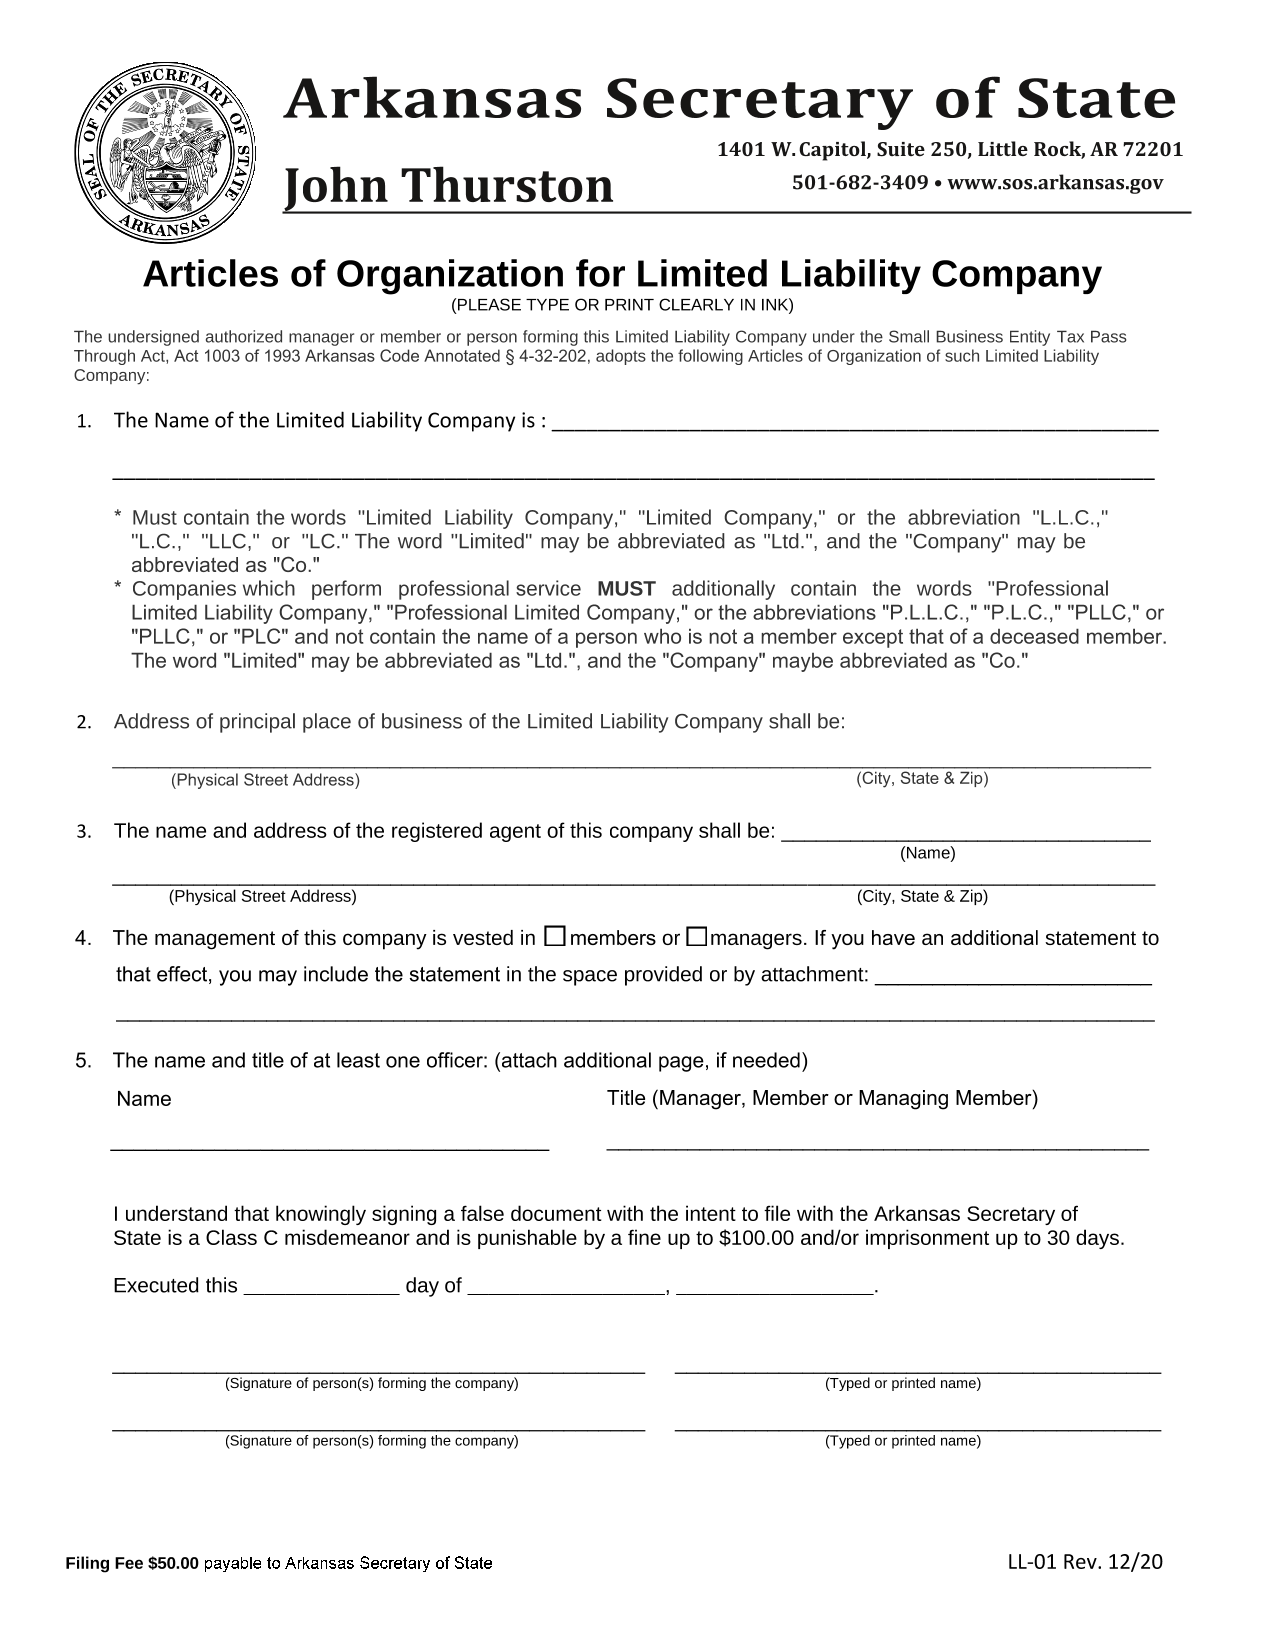 Arkansas LLC Articles of Organization